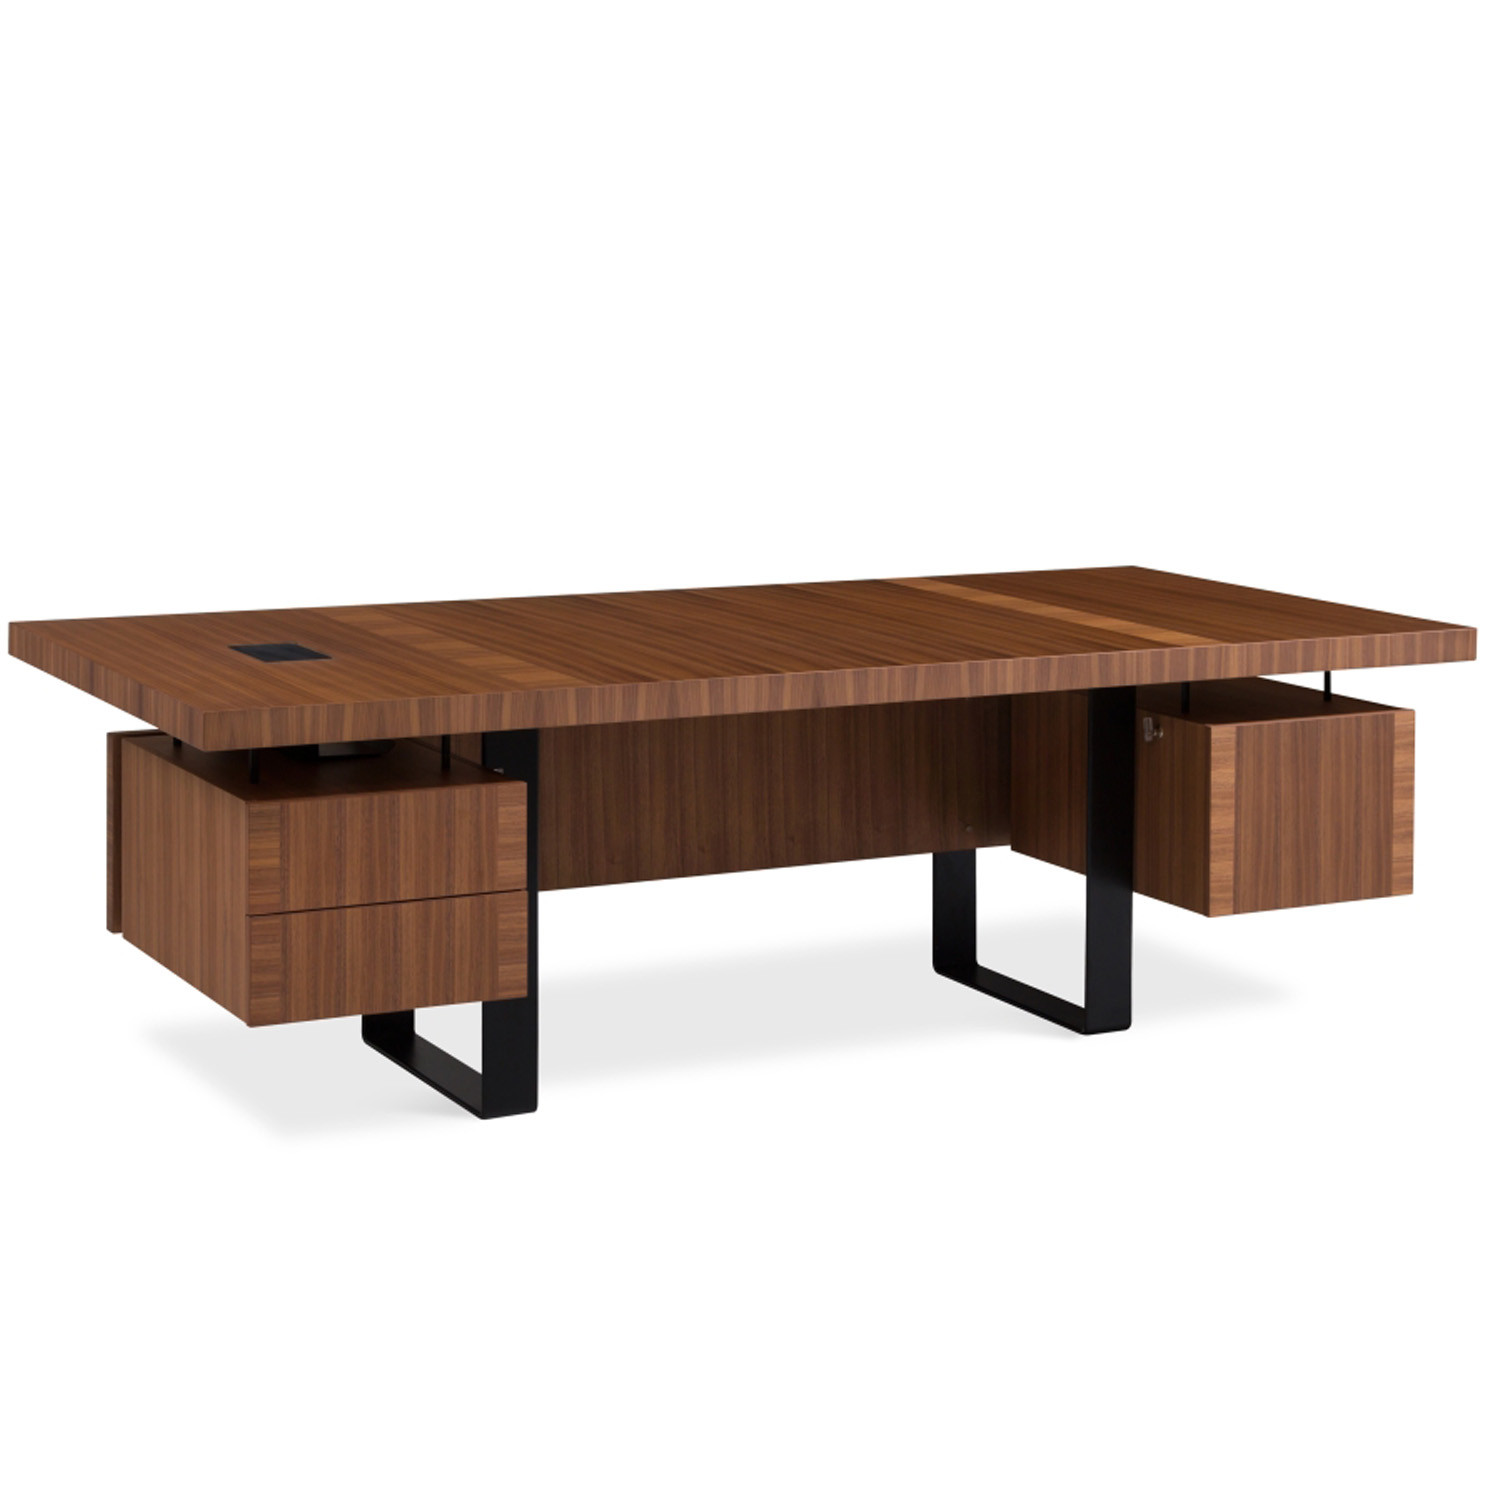 Gazel Executive Office Desks by Koleksiyon